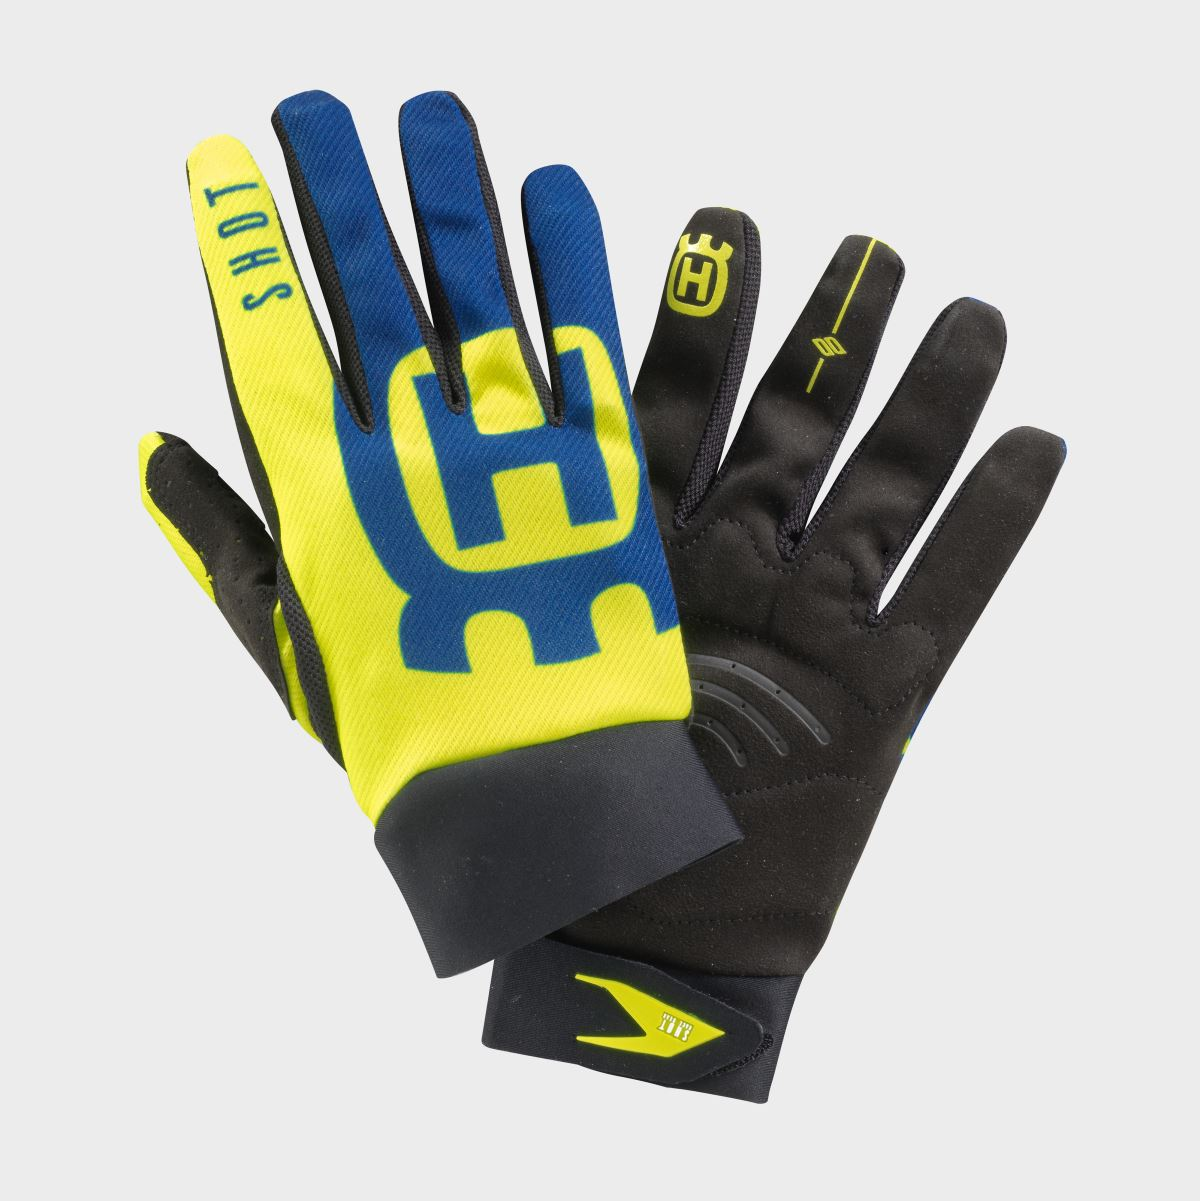 191009 HUSQVARNA MOTORCYCLES REPLICA FLASH COLLECTION 2019 BY SHOT - GLOVES [1]